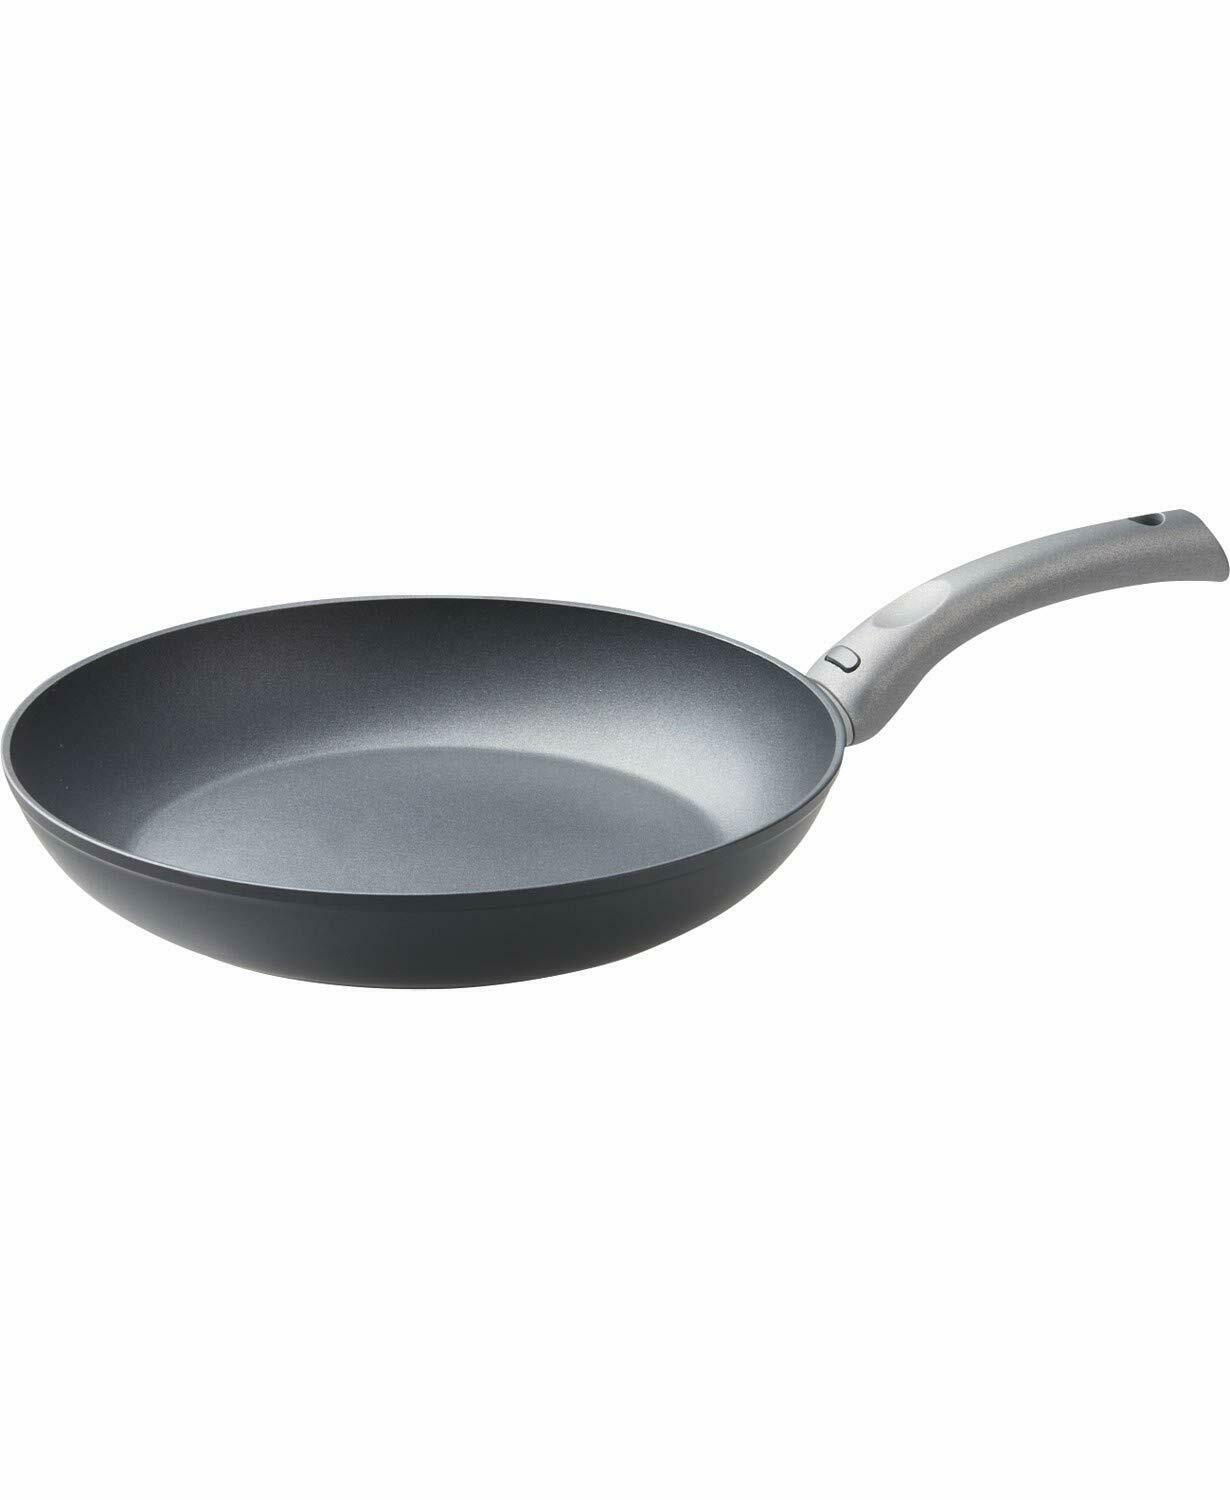 TVS Italian Cookware, MITO   Scratch Proof, Induction 9.5  (24cm) Pan